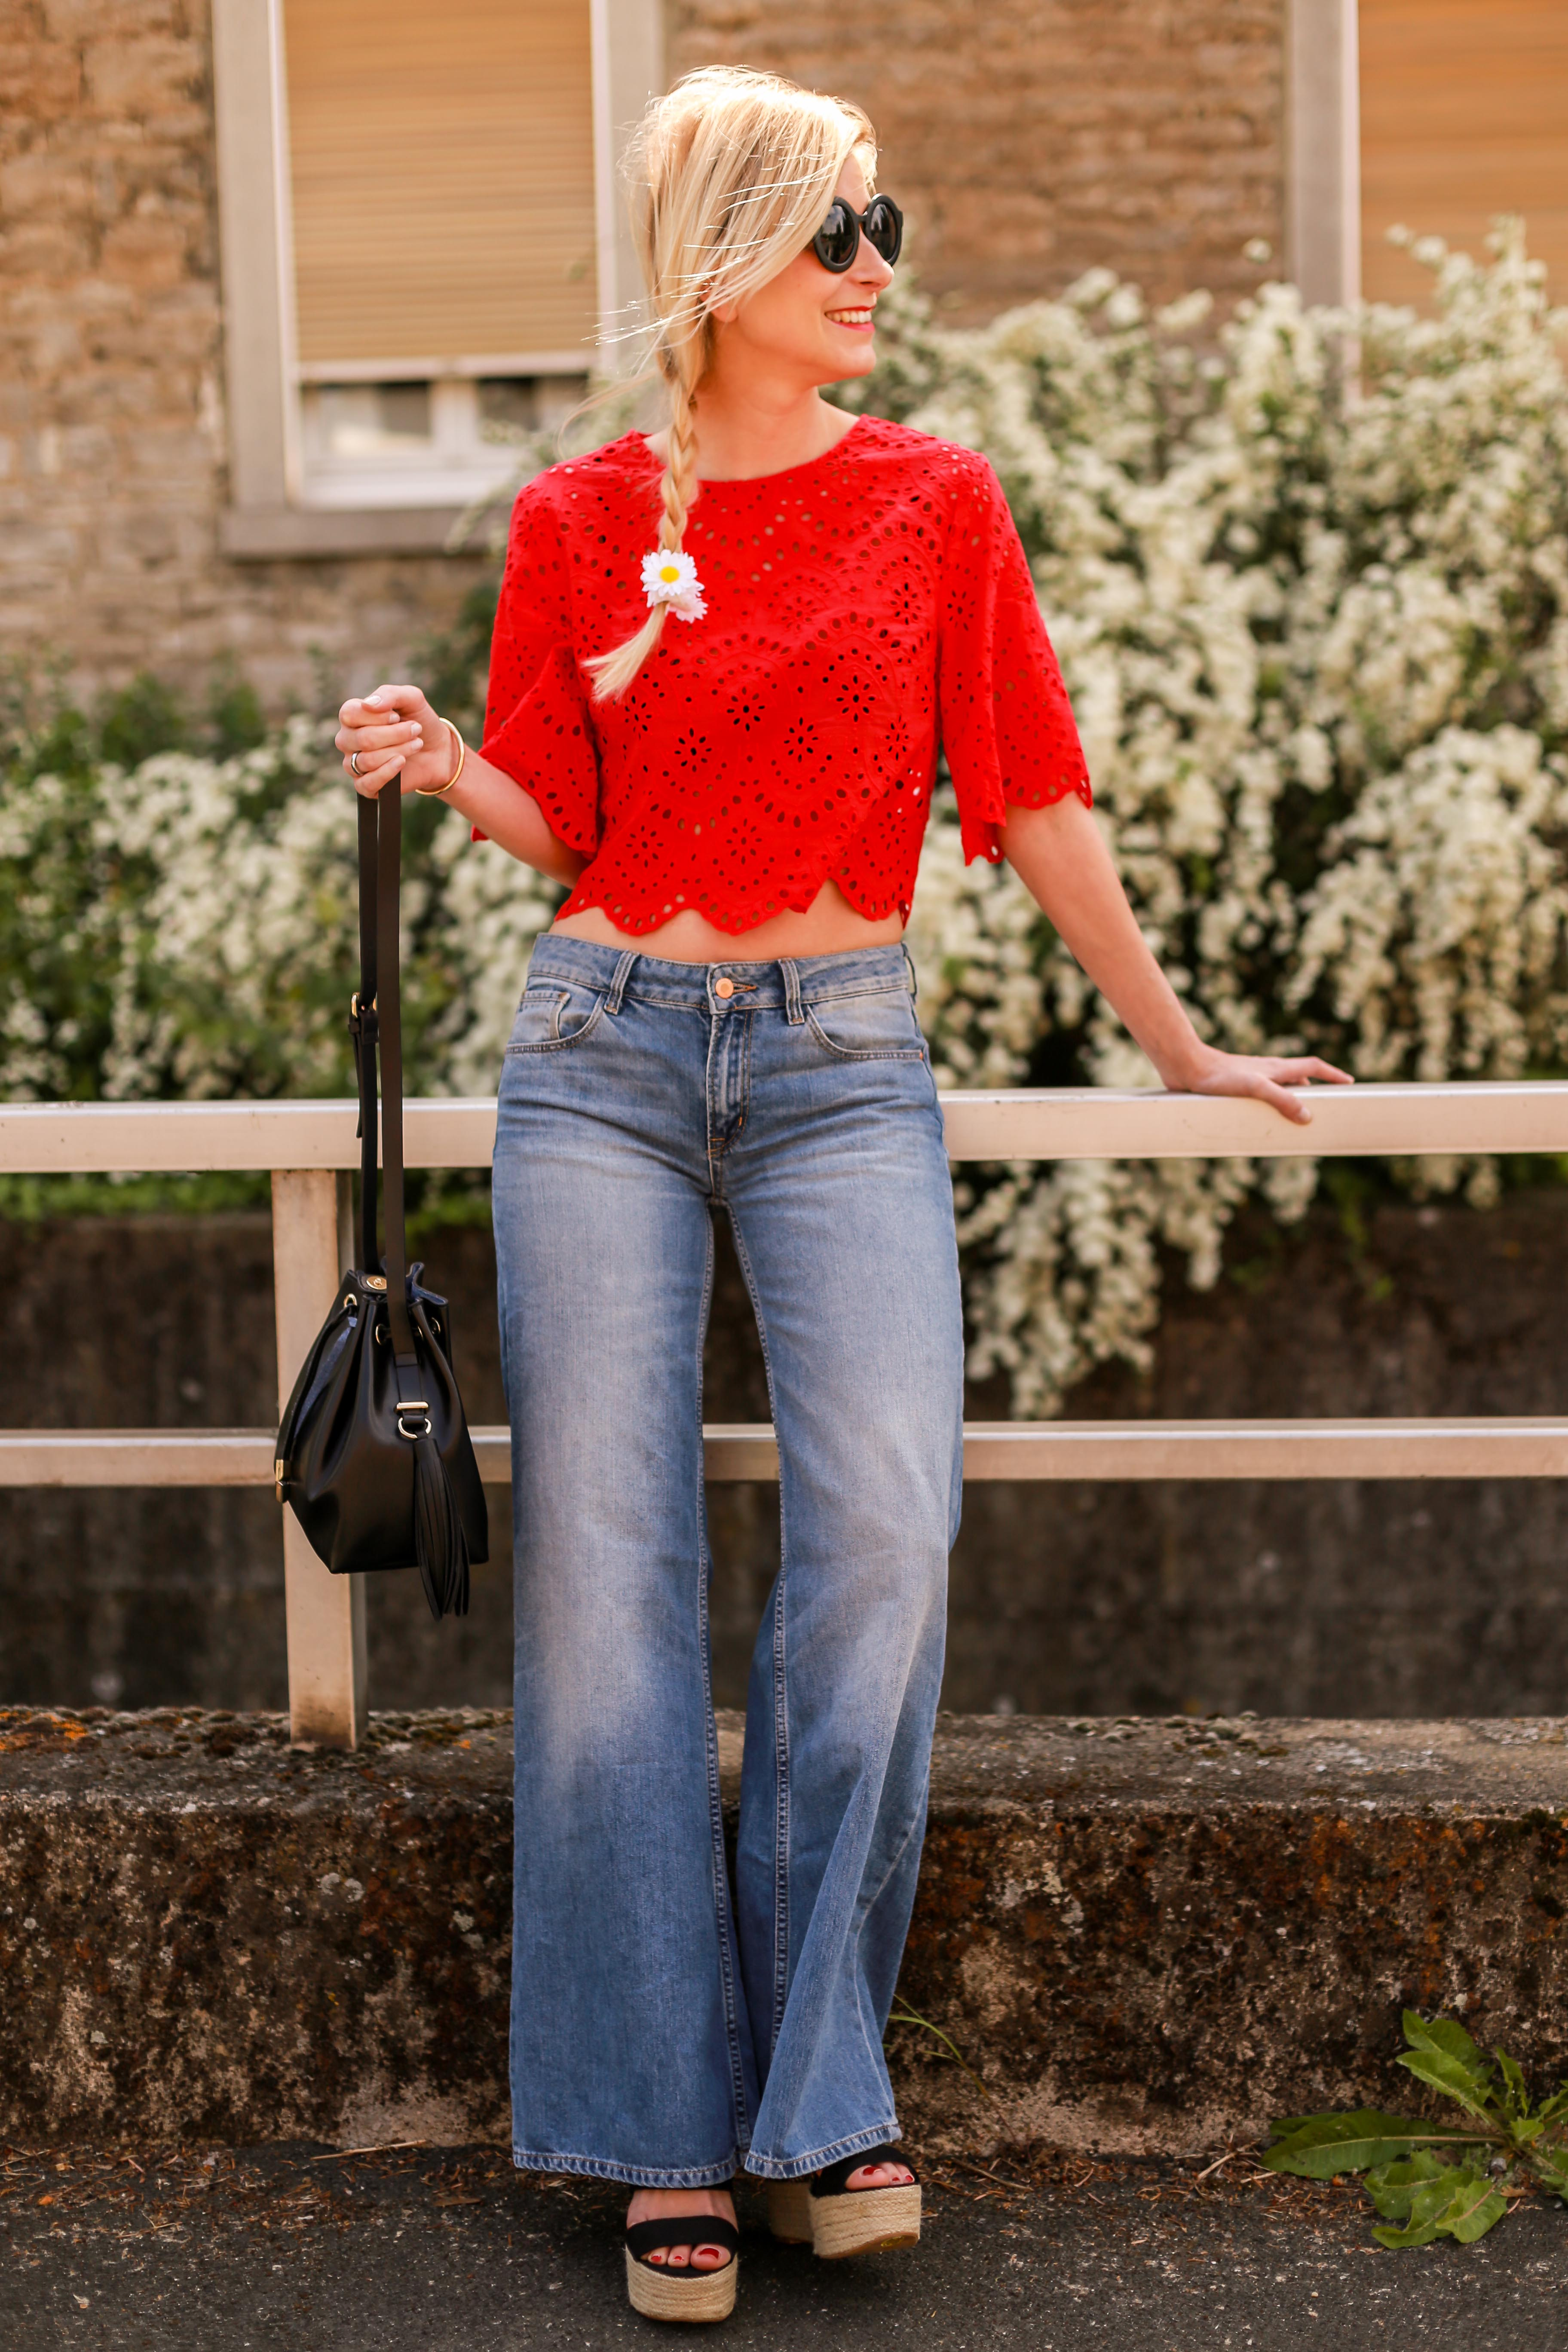 Fashion_Outfit_70ies_Vibe-46